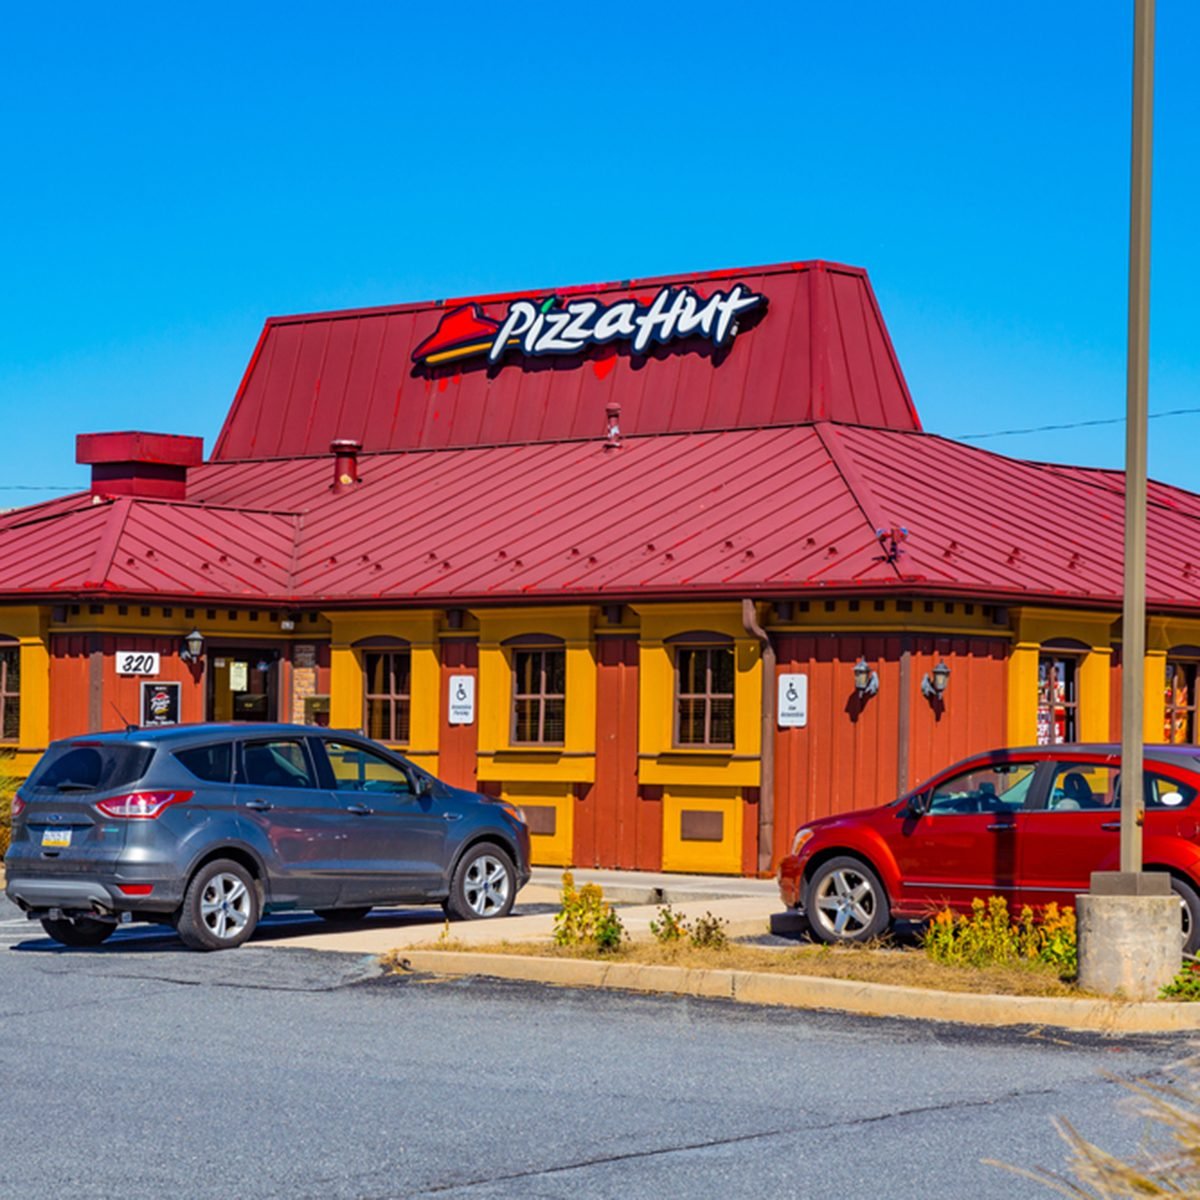 A Pizza Hut restaurant offers fresh pizzas to eat in the restaurant as well as to carryout at one of the chain's restaurants.